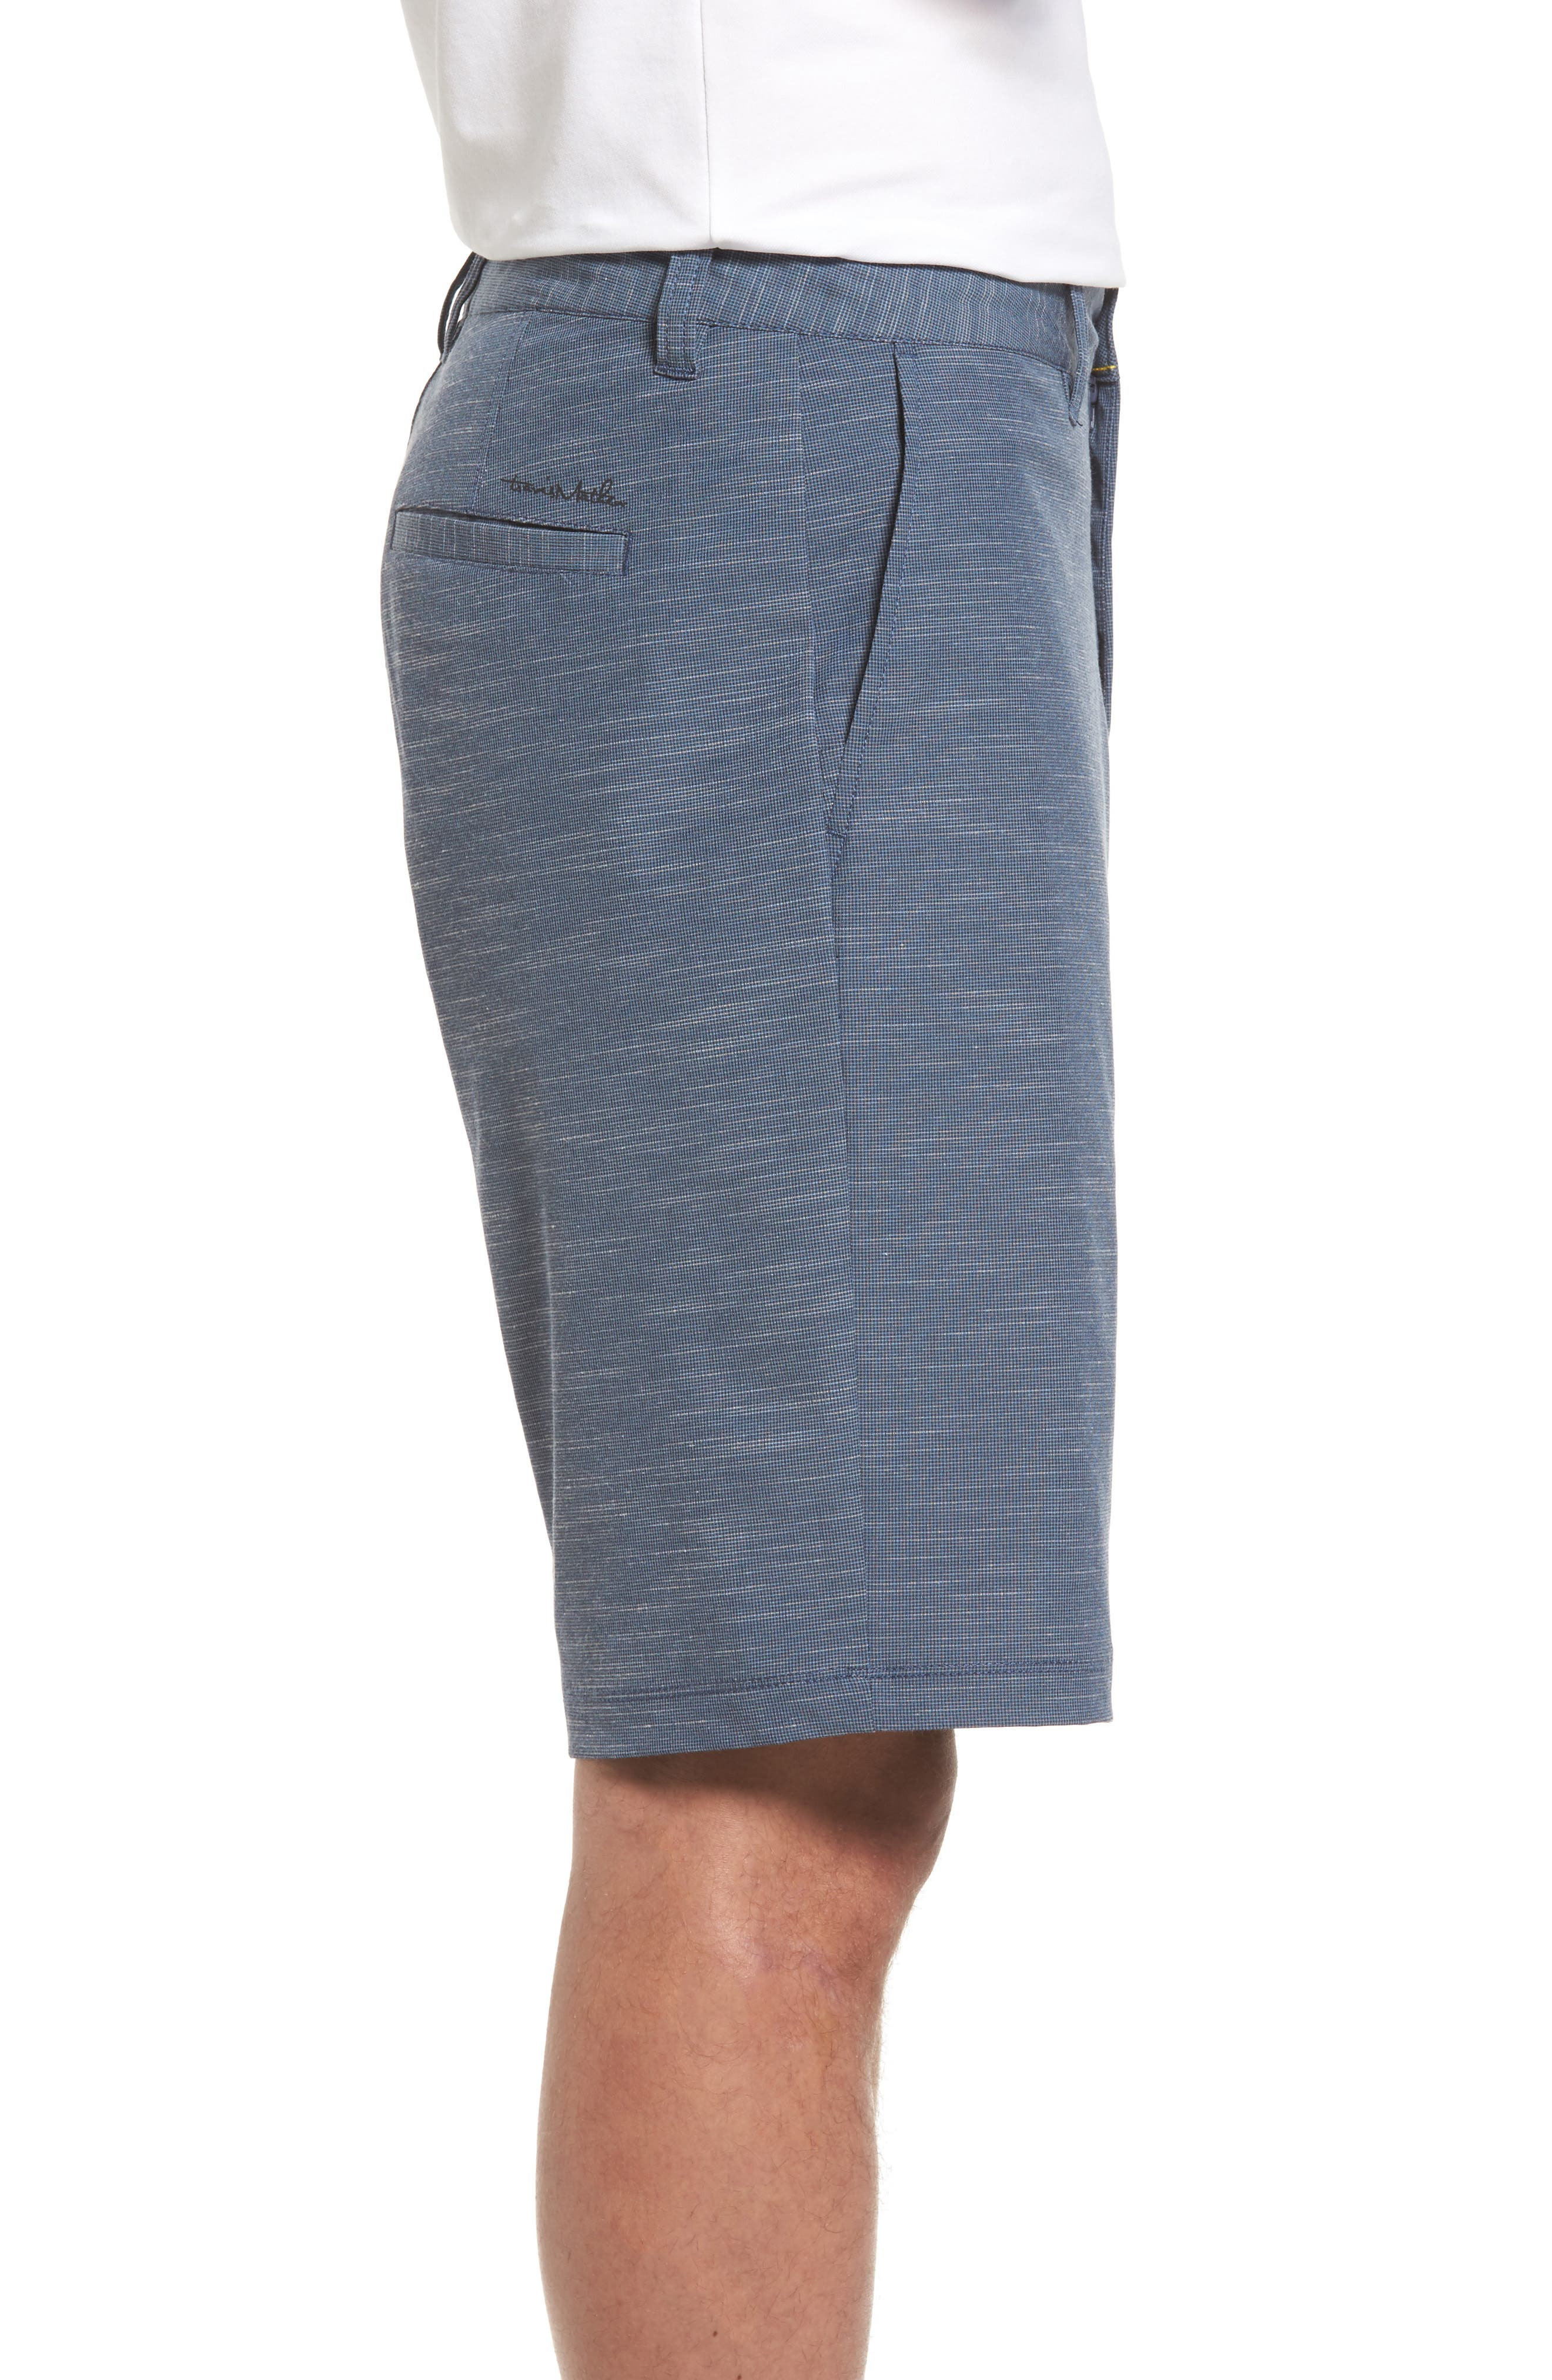 Fisher Shorts,                             Alternate thumbnail 3, color,                             Heather Blue Nights